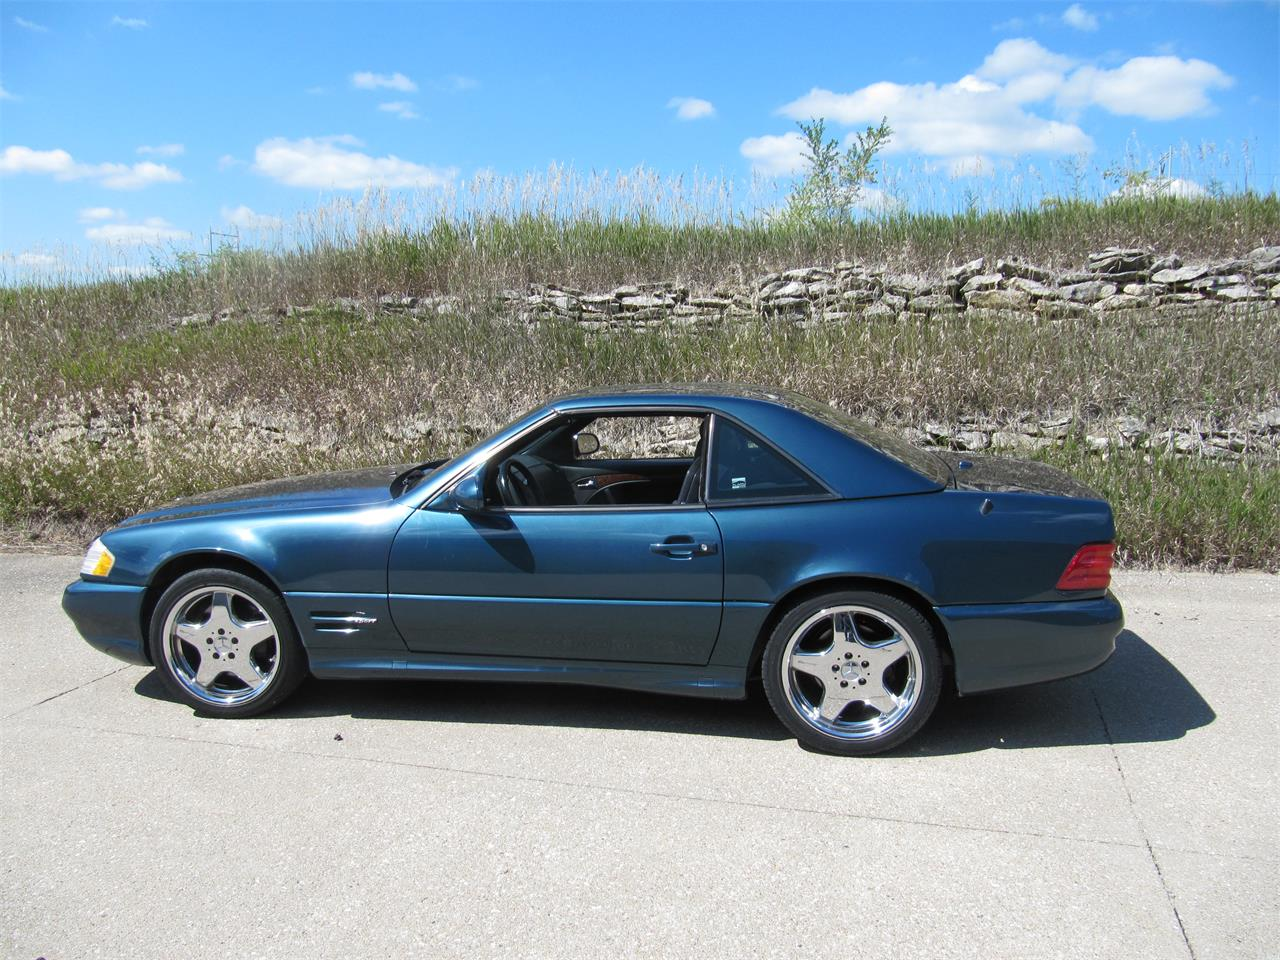 2000 Mercedes-Benz SL500 (CC-1380669) for sale in Omaha, Nebraska